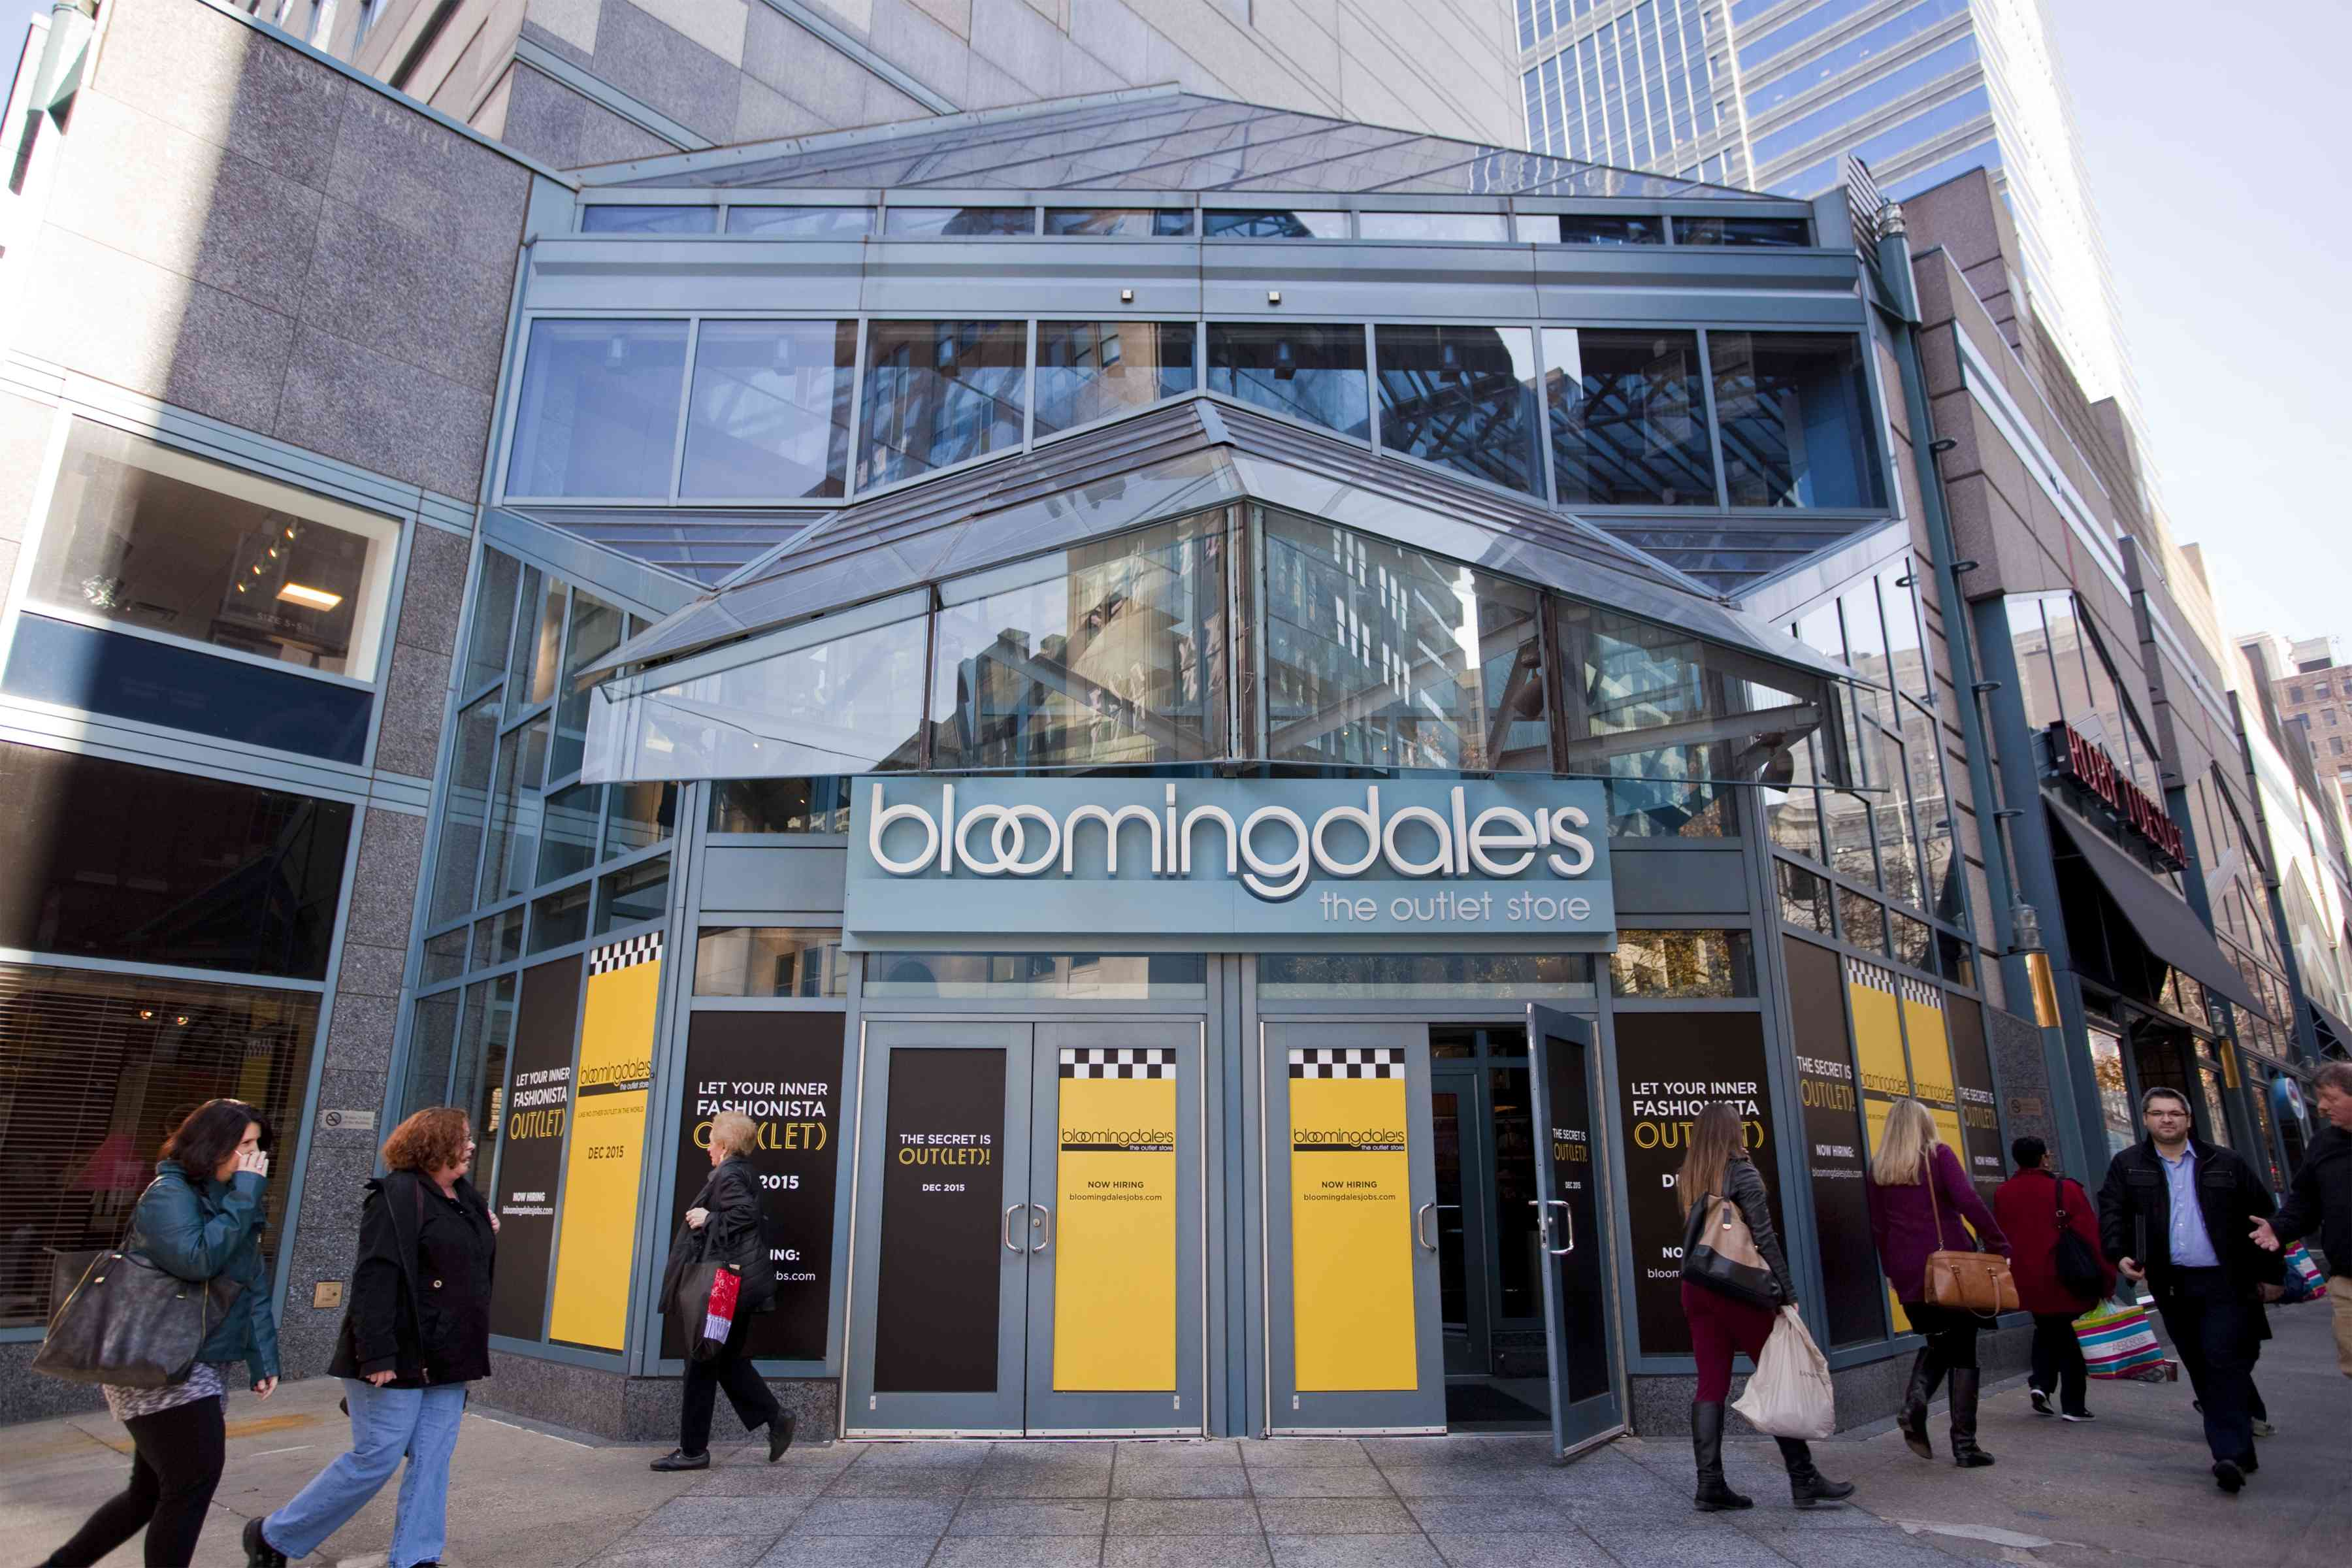 Bloomingdale's outlet in Philly